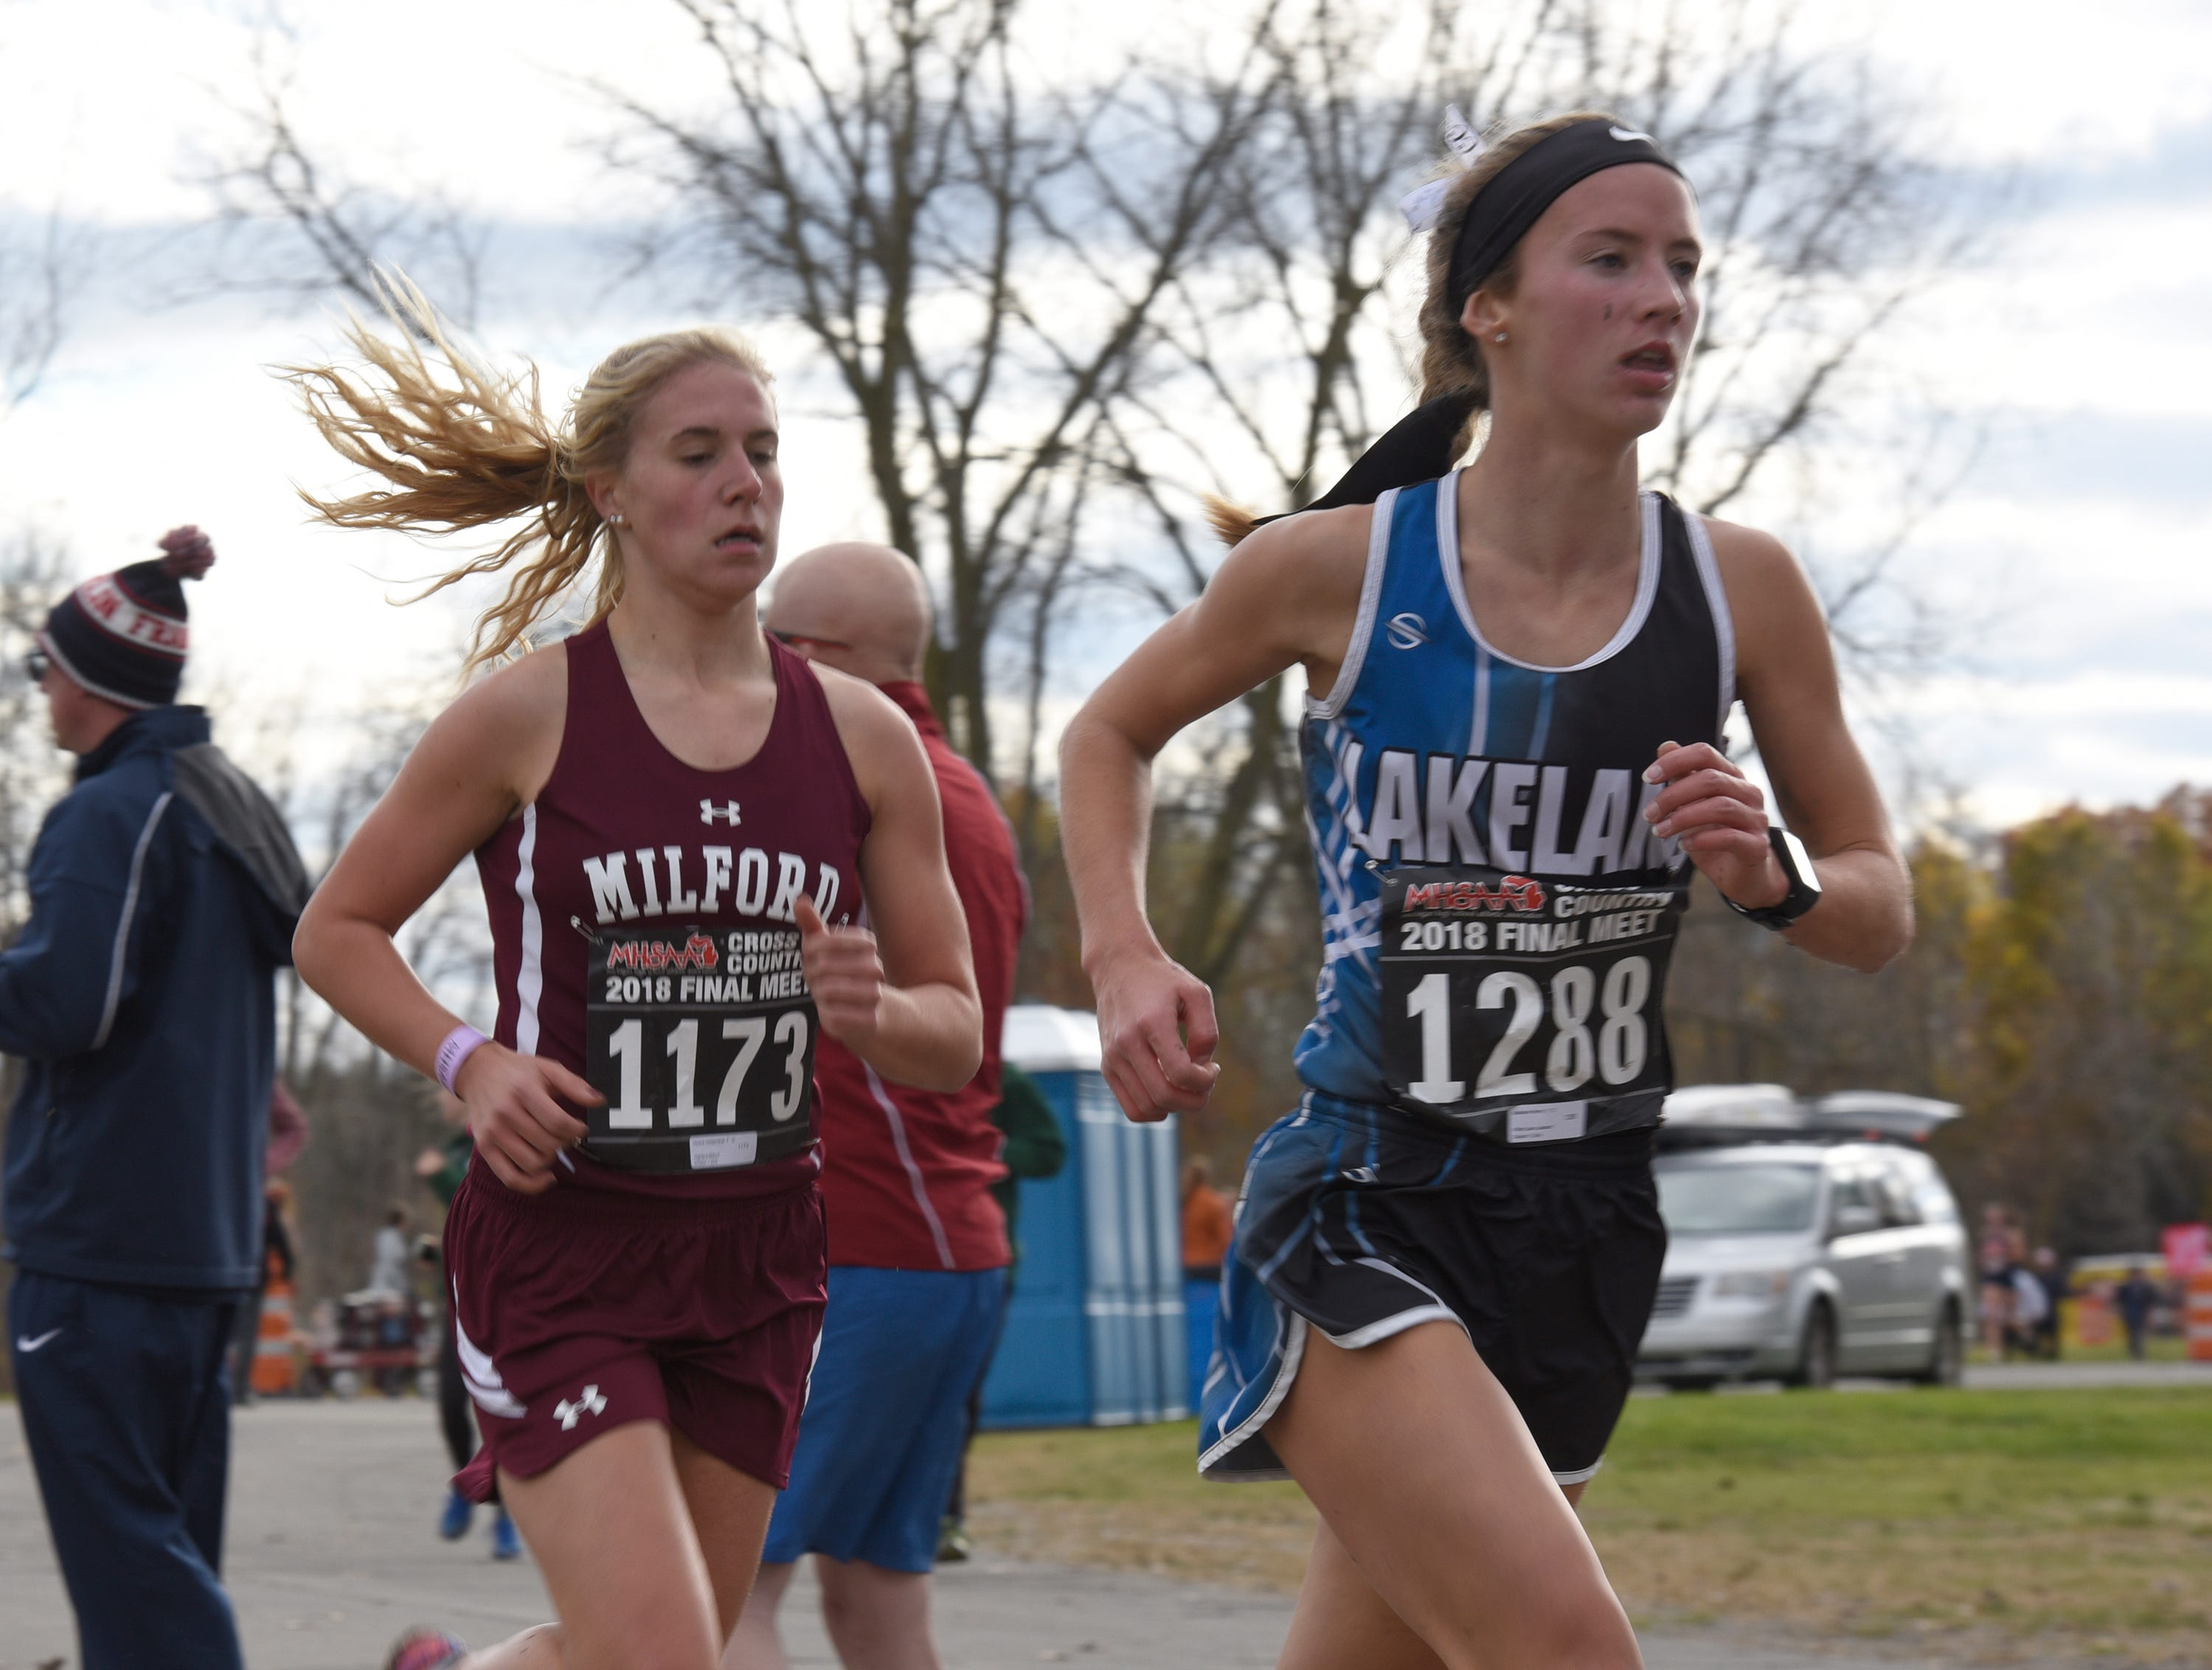 Lakeland's Madeline Rehm (1288) and Milford's Victoria Heiligenthal (1173) during the Division 1 2018 cross country finals at Michigan International Speedway.